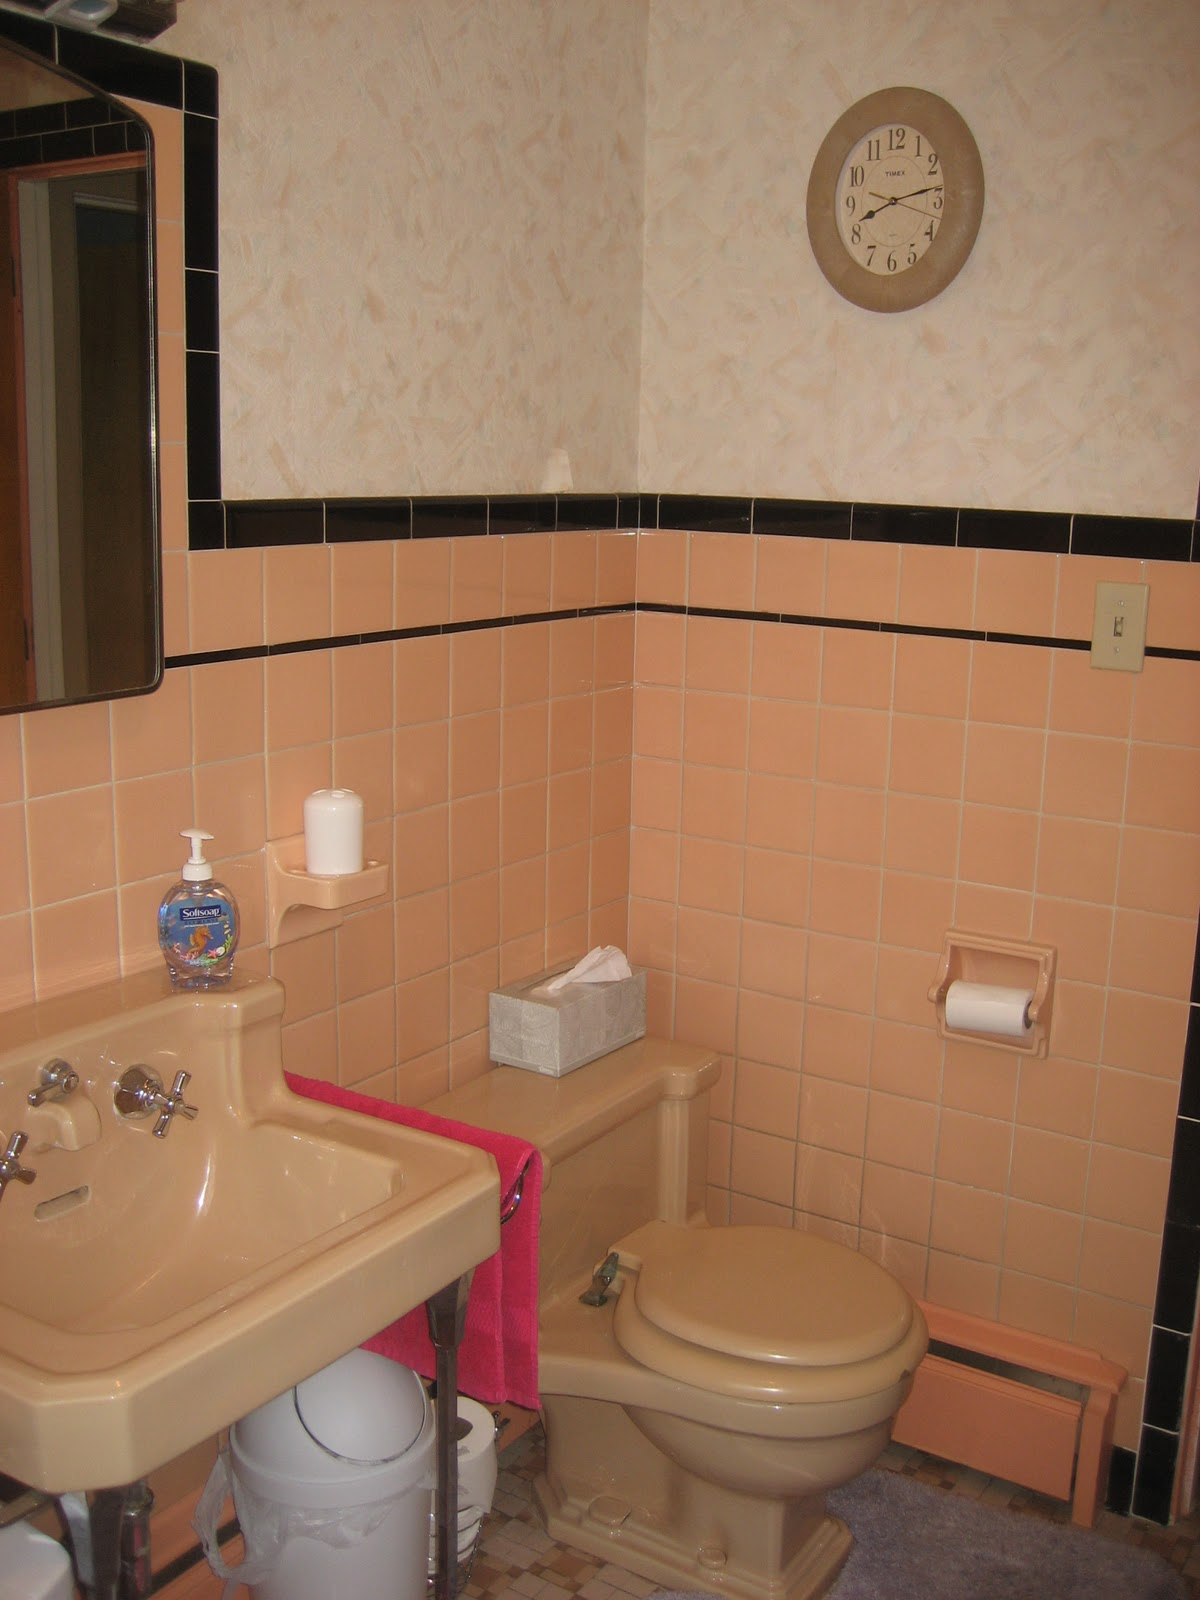 Life Of The Lorenzens Bathroom RemodelRevealed - Austin bathroom remodel